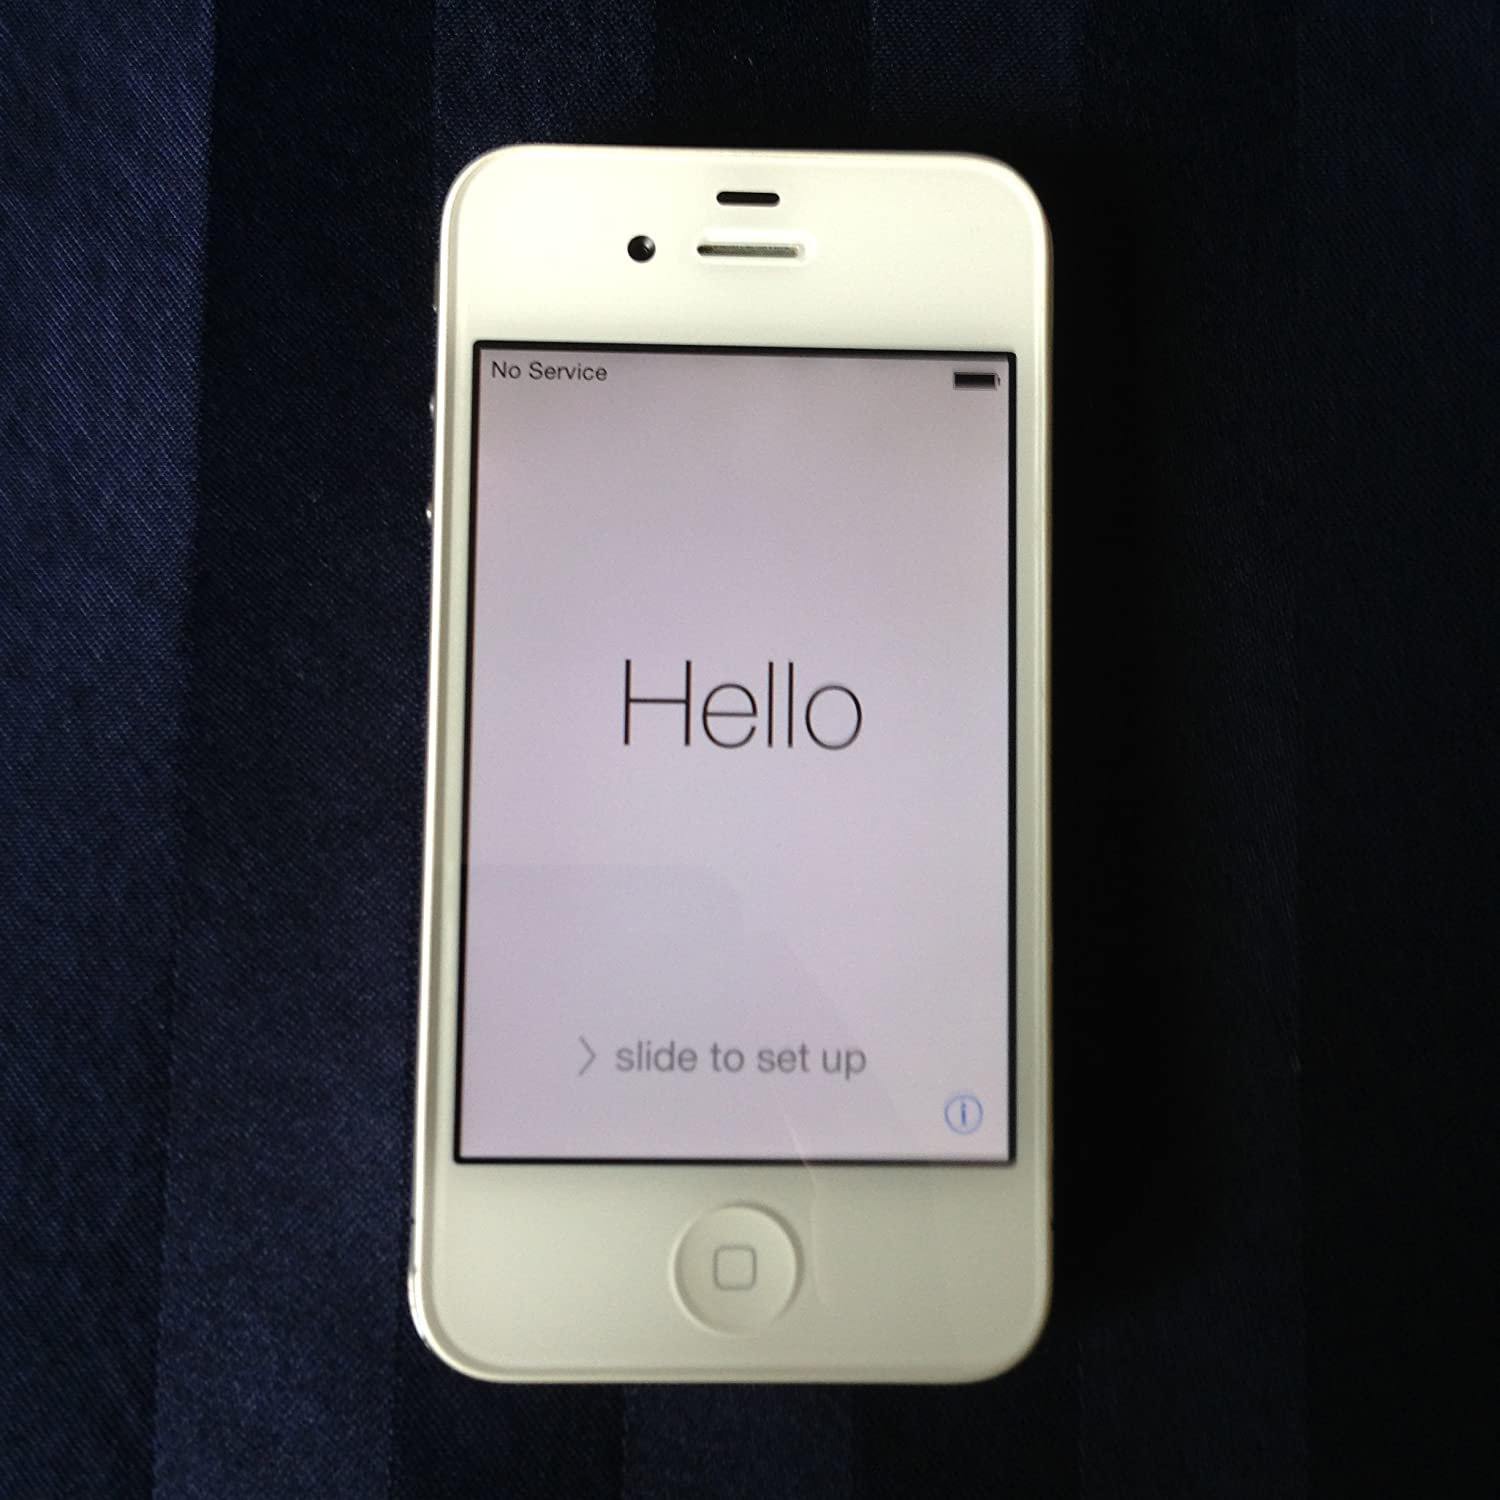 Apple iPhone 4 16GB White GSM Unlocked-Refurbished